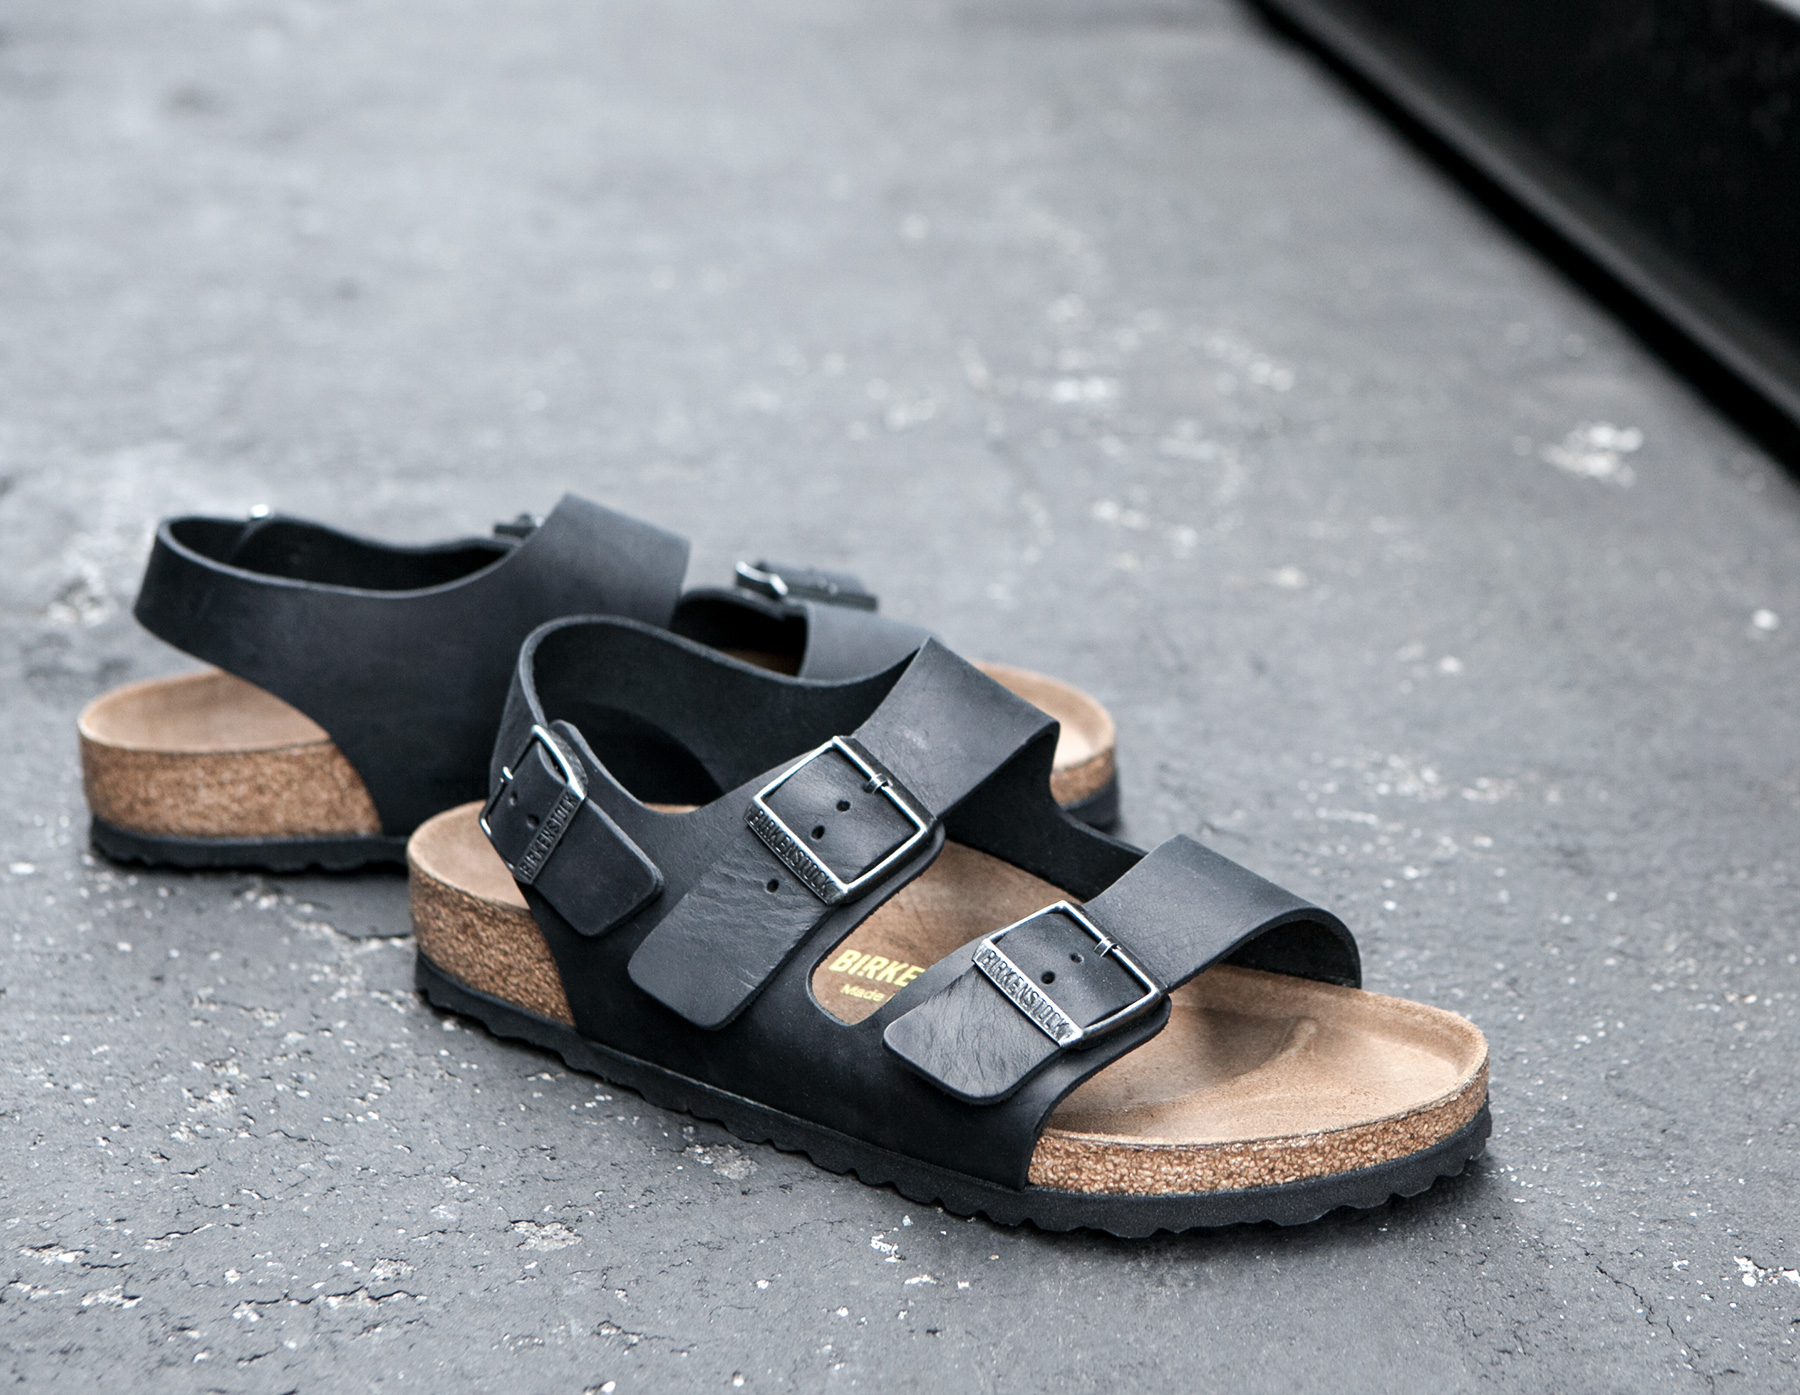 f94a068a9136 Lyst - James Perse Birkenstock Mens Milano Oiled Leather Sandal in ...